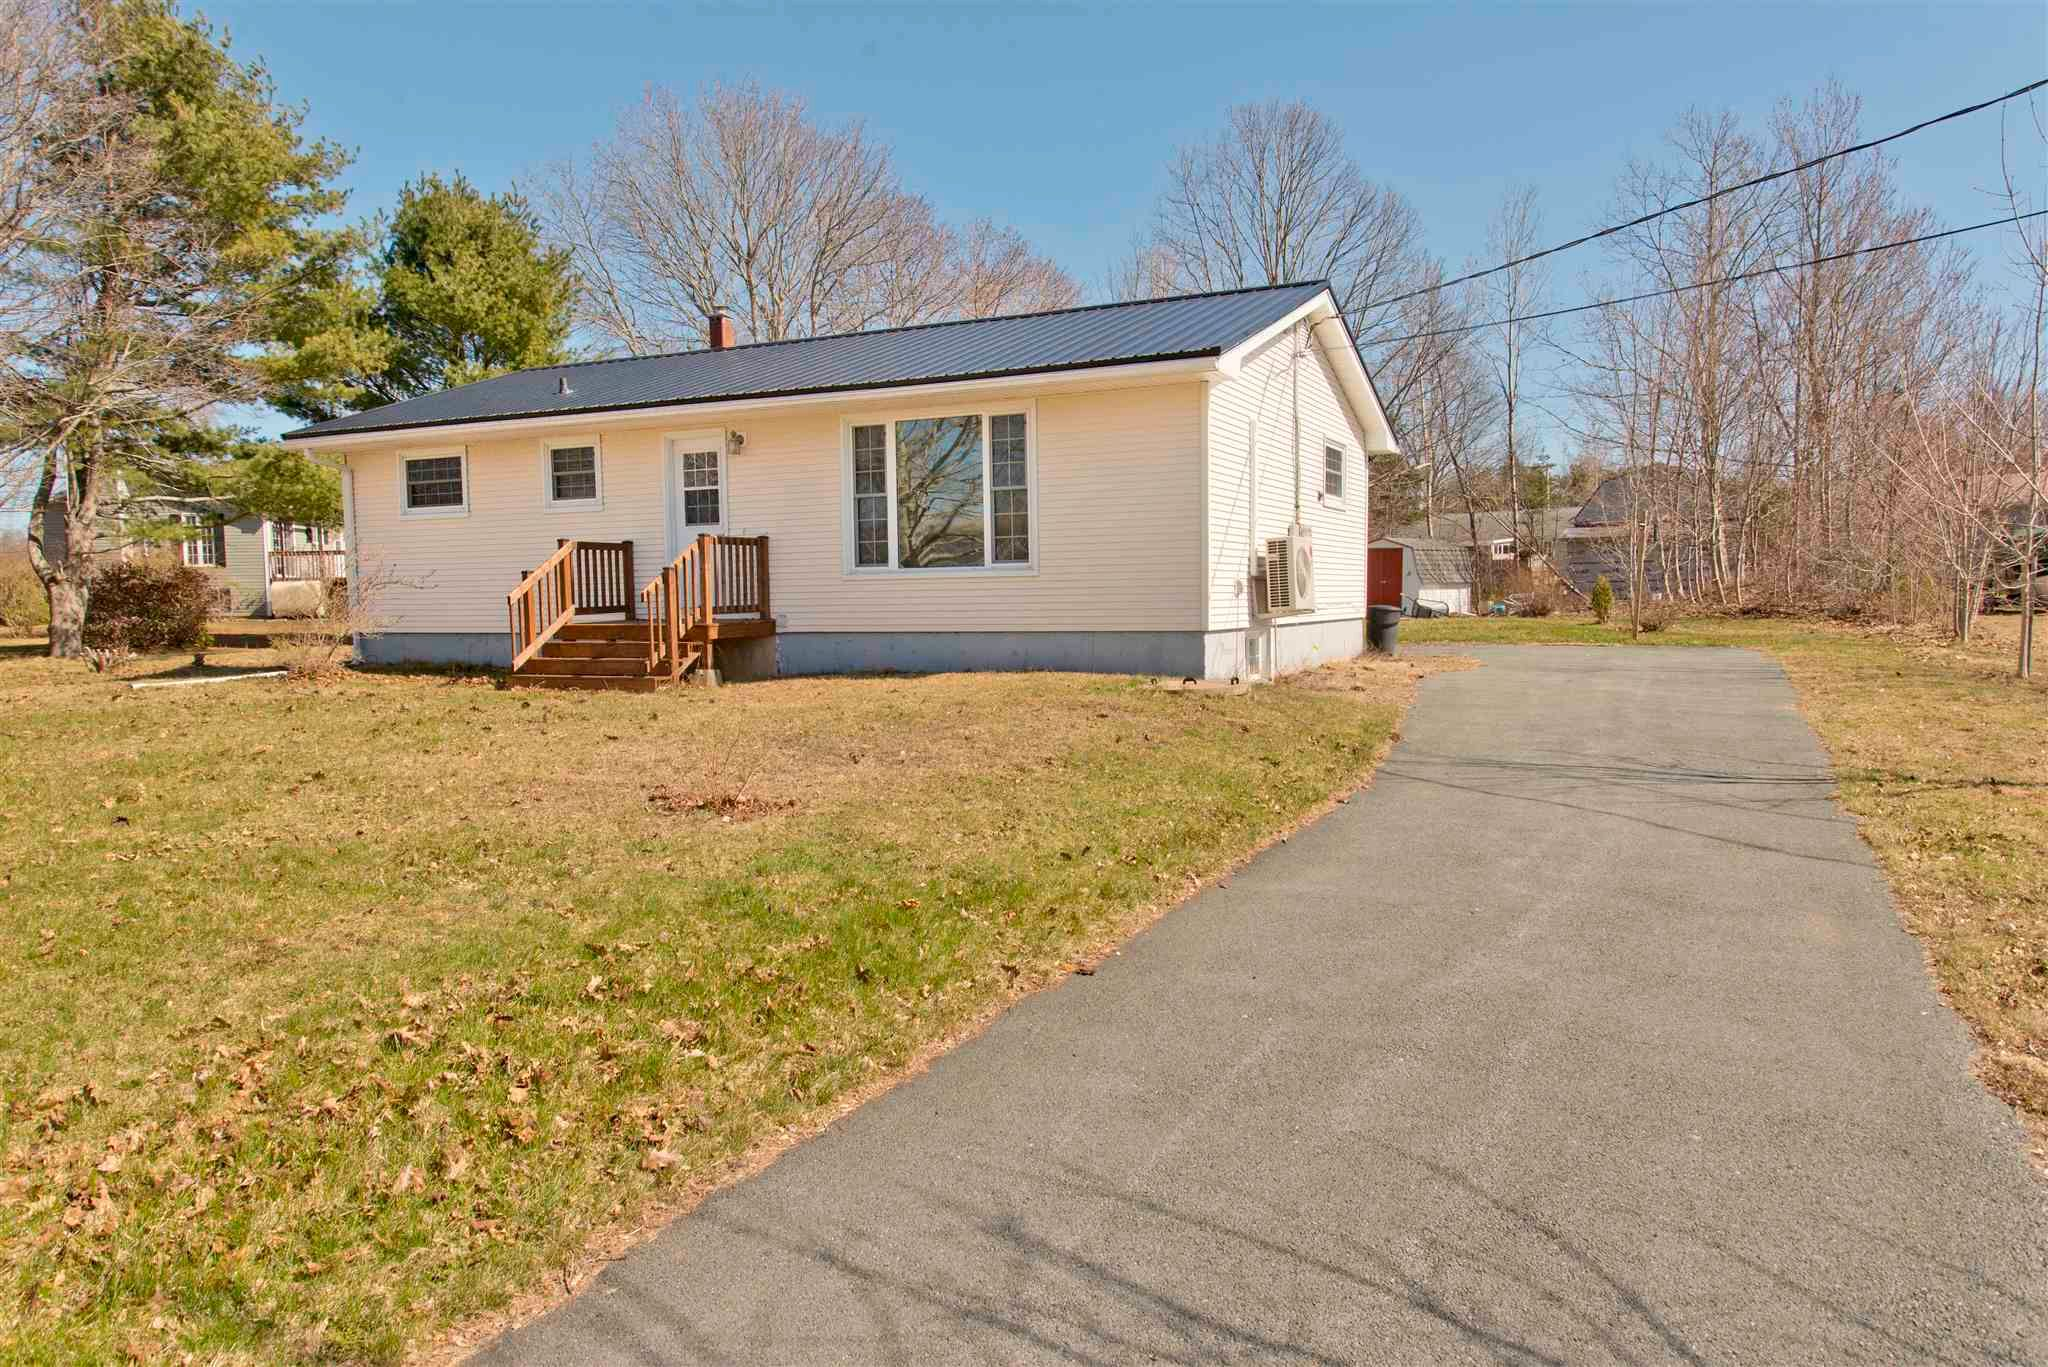 Main Photo: 1012 Lydiard Road in Centreville: 404-Kings County Residential for sale (Annapolis Valley)  : MLS®# 202109101